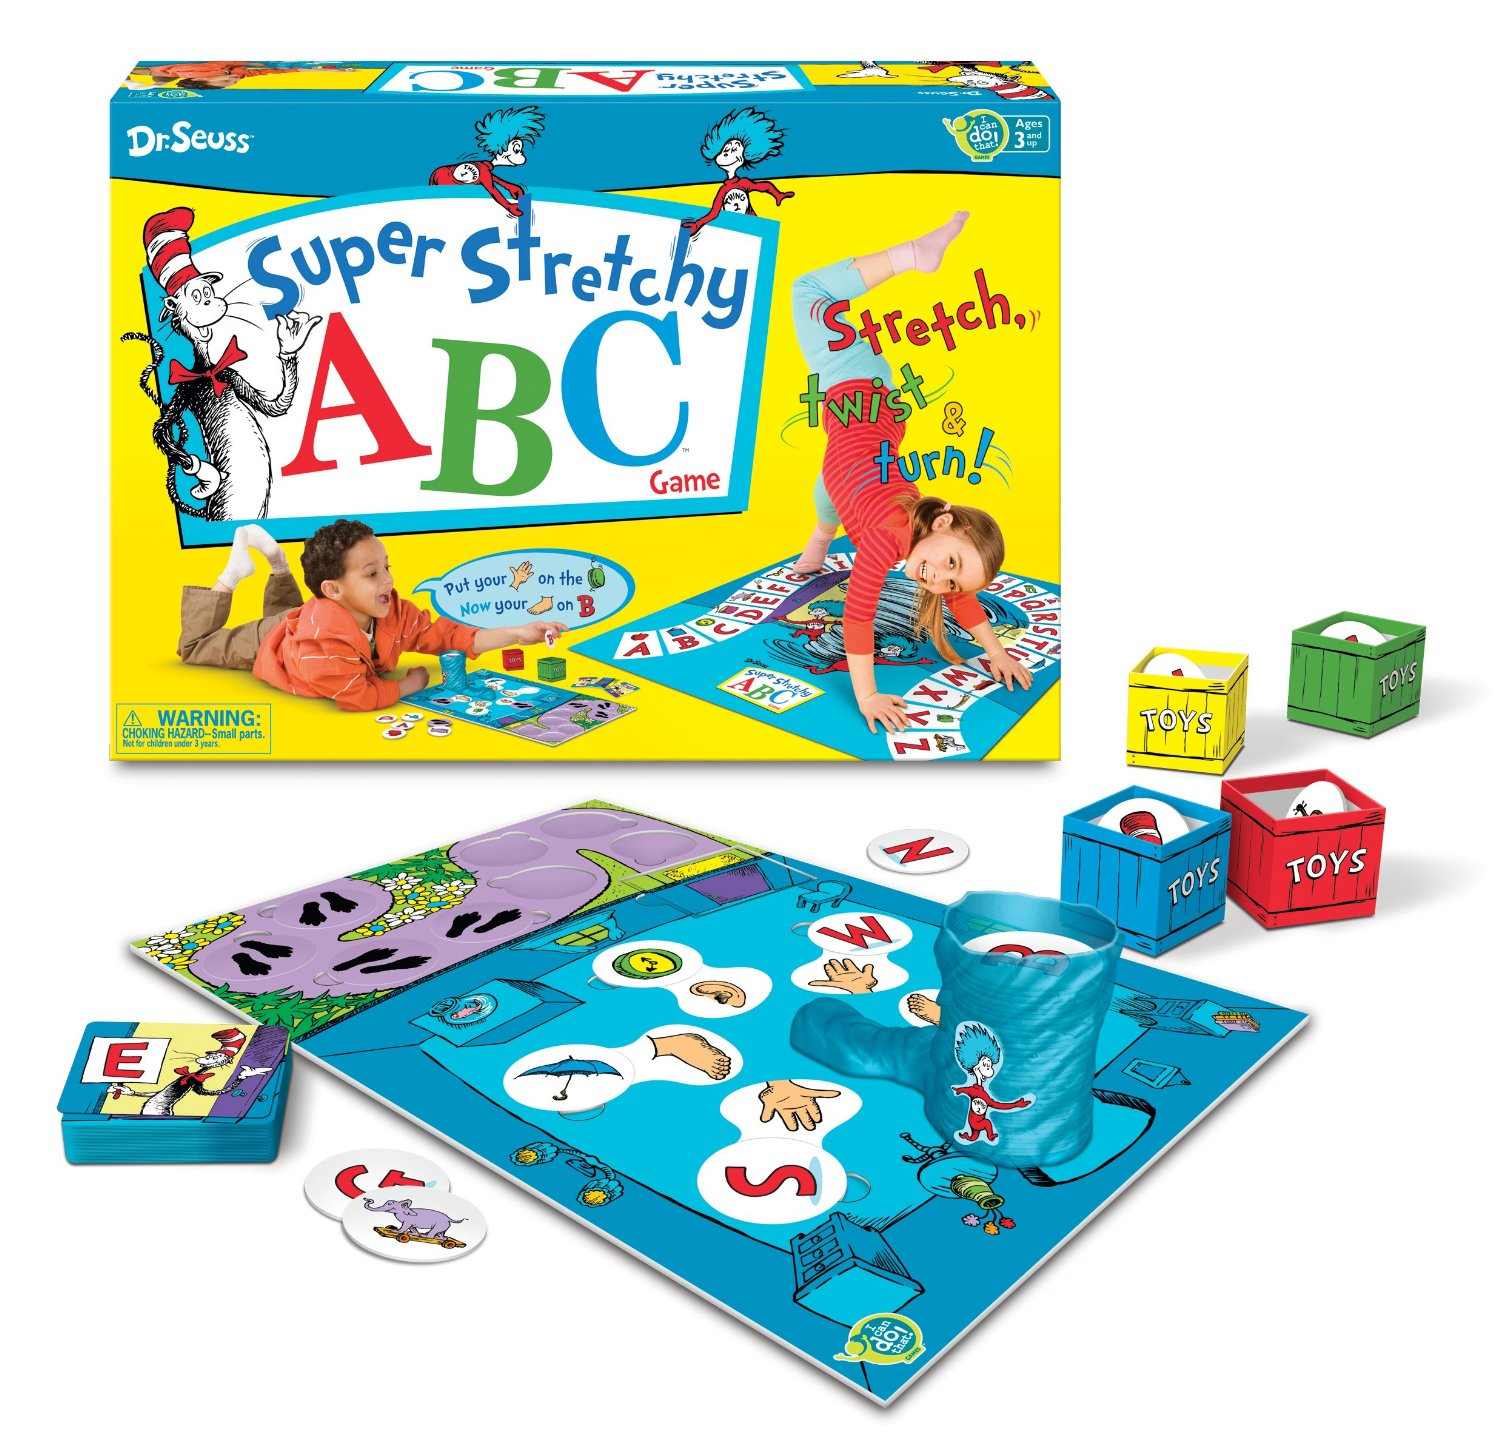 Super Stretchy ABC Game Dr. Seuss Board Party Games for Kids